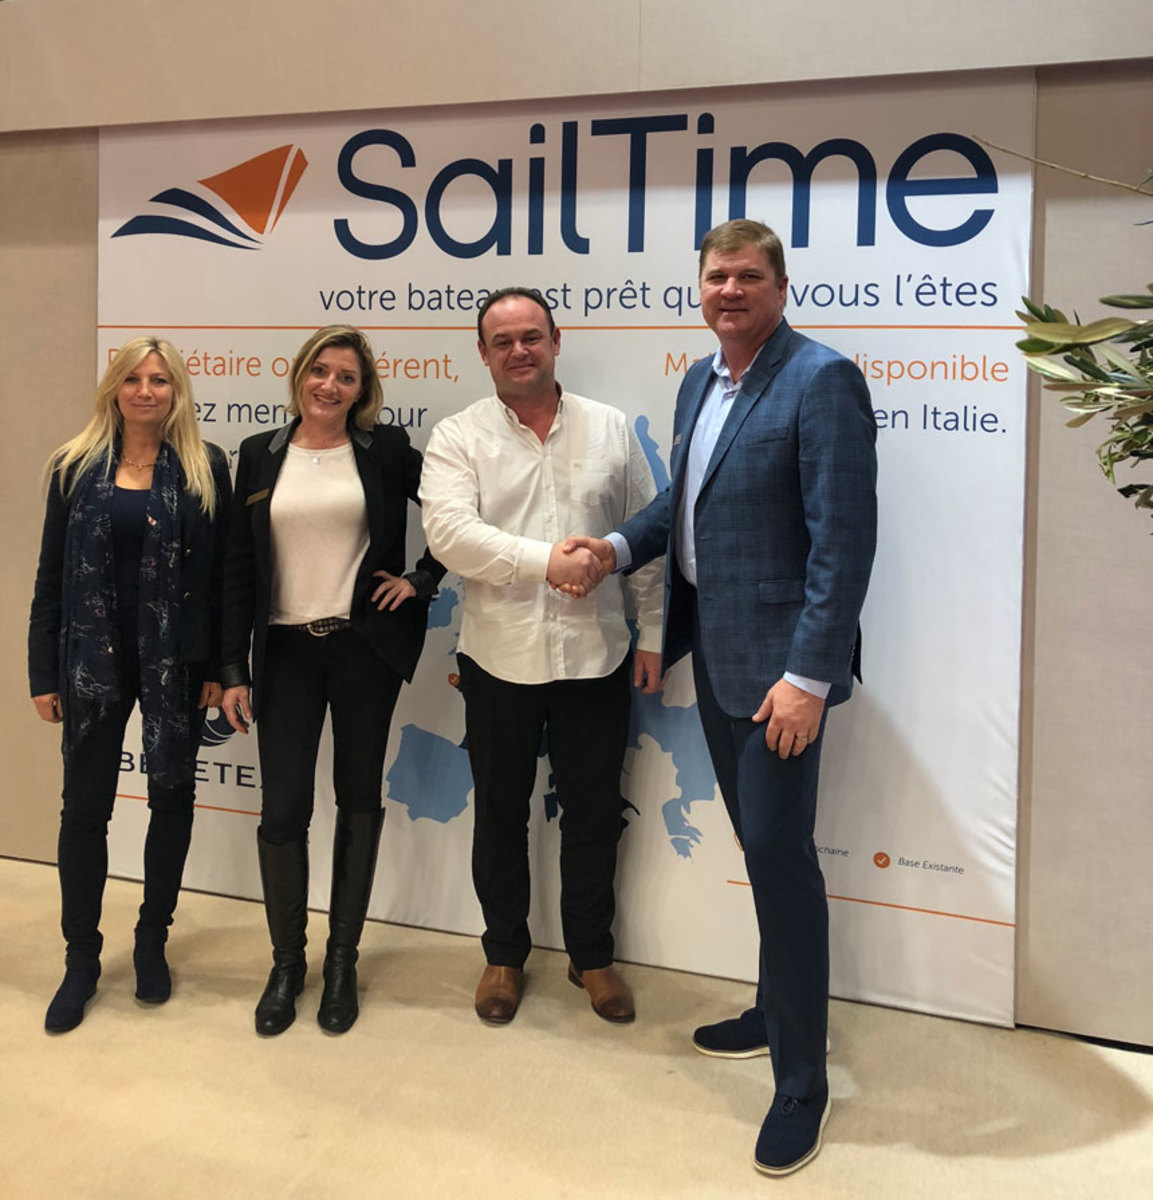 Tammy Hess of SailTime, Delphine Salaun of CN Diffusion, Yann Labbe of CN Diffusion and Todd Hess of SailTime